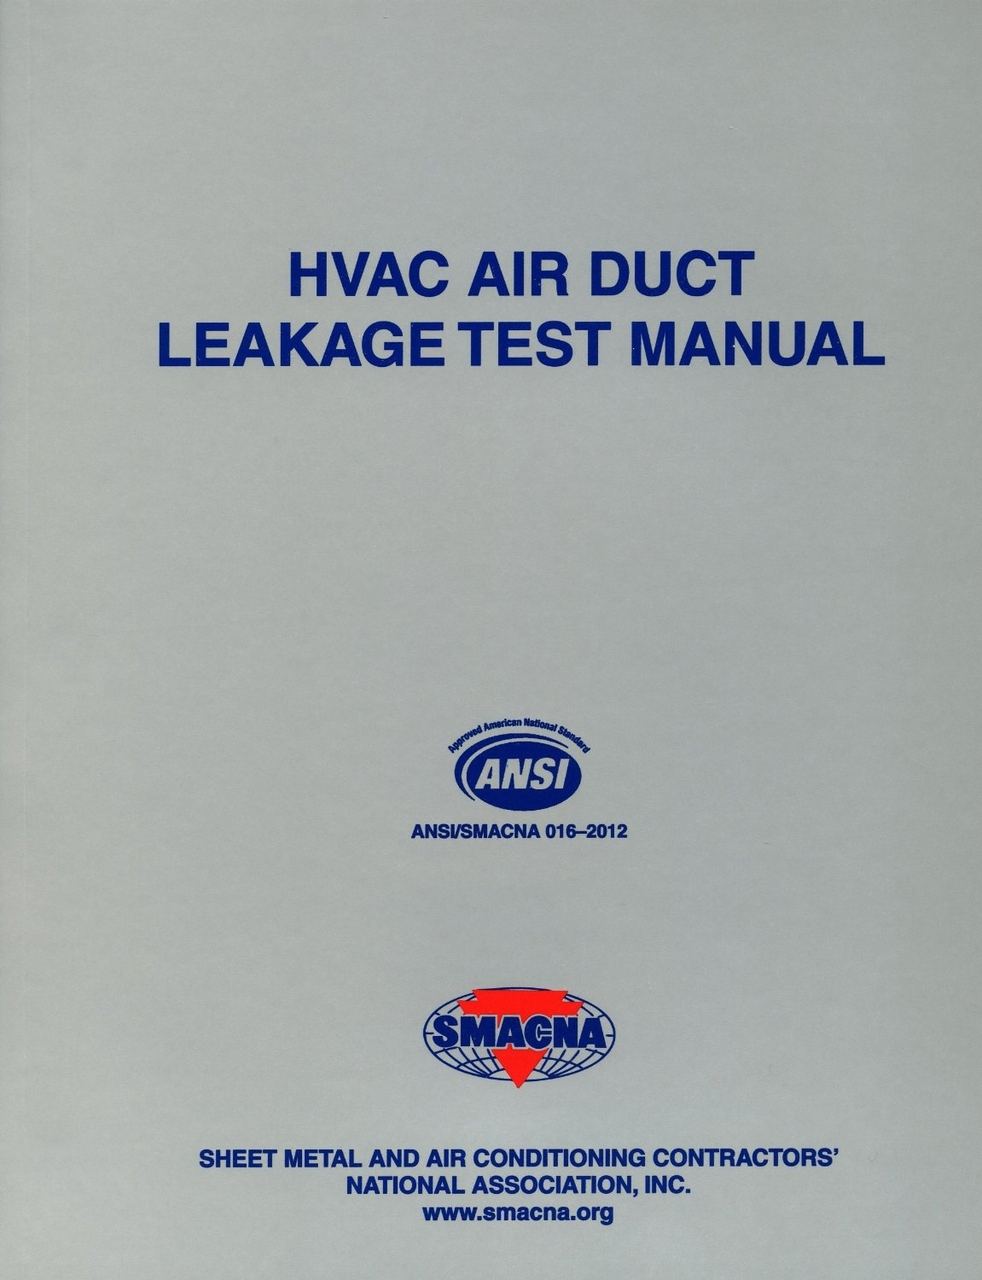 HVAC Air Duct Leakage Test Manual (SMACNA 1143) - 9781617210273 |  Contractor Resource